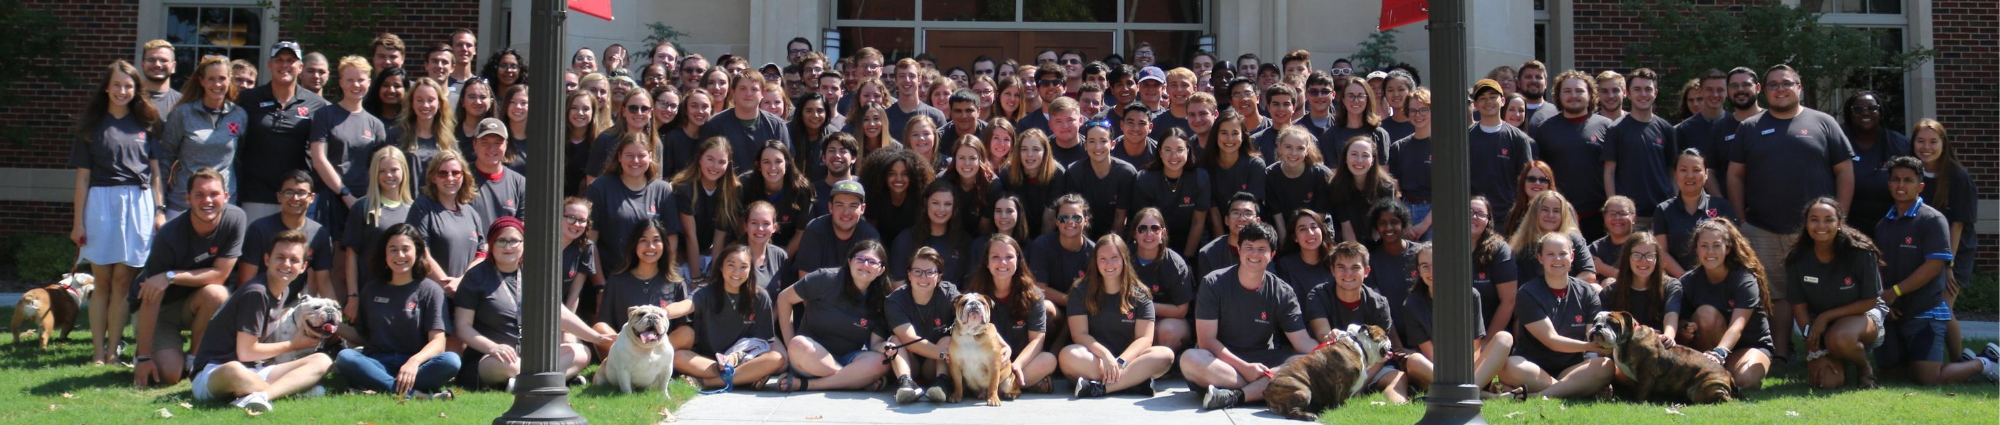 Group picture of 2019 Headington Residential College residents, faculty, and staff.